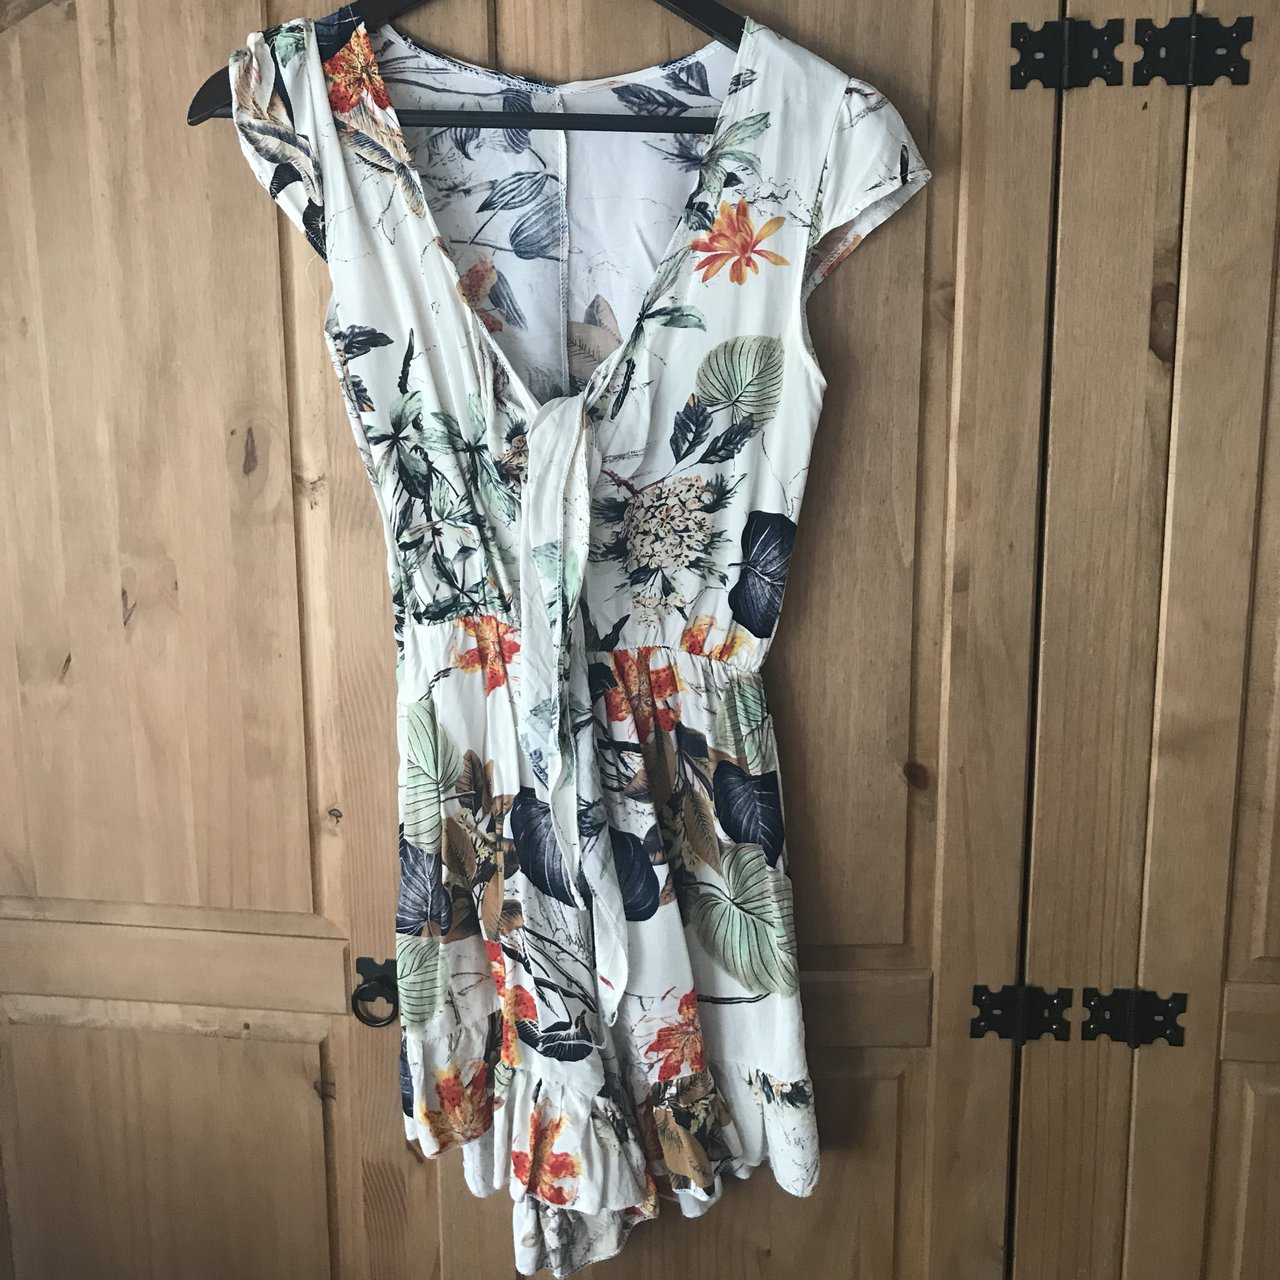 83d98de57e89 Really popular and stylish playsuit